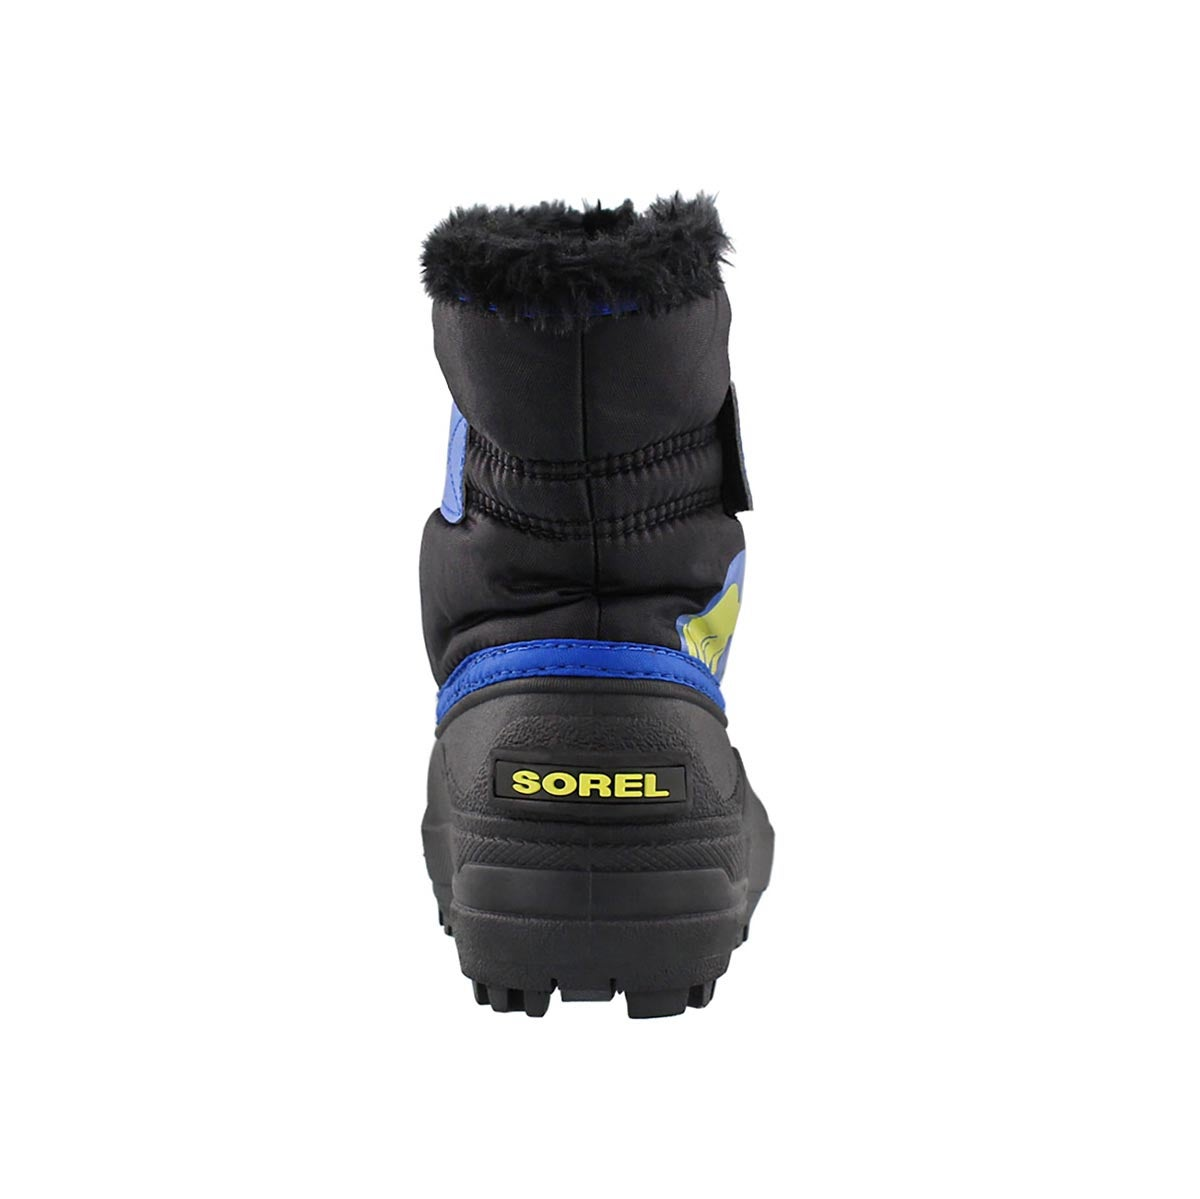 Inf Snow Commander blk/blu boot